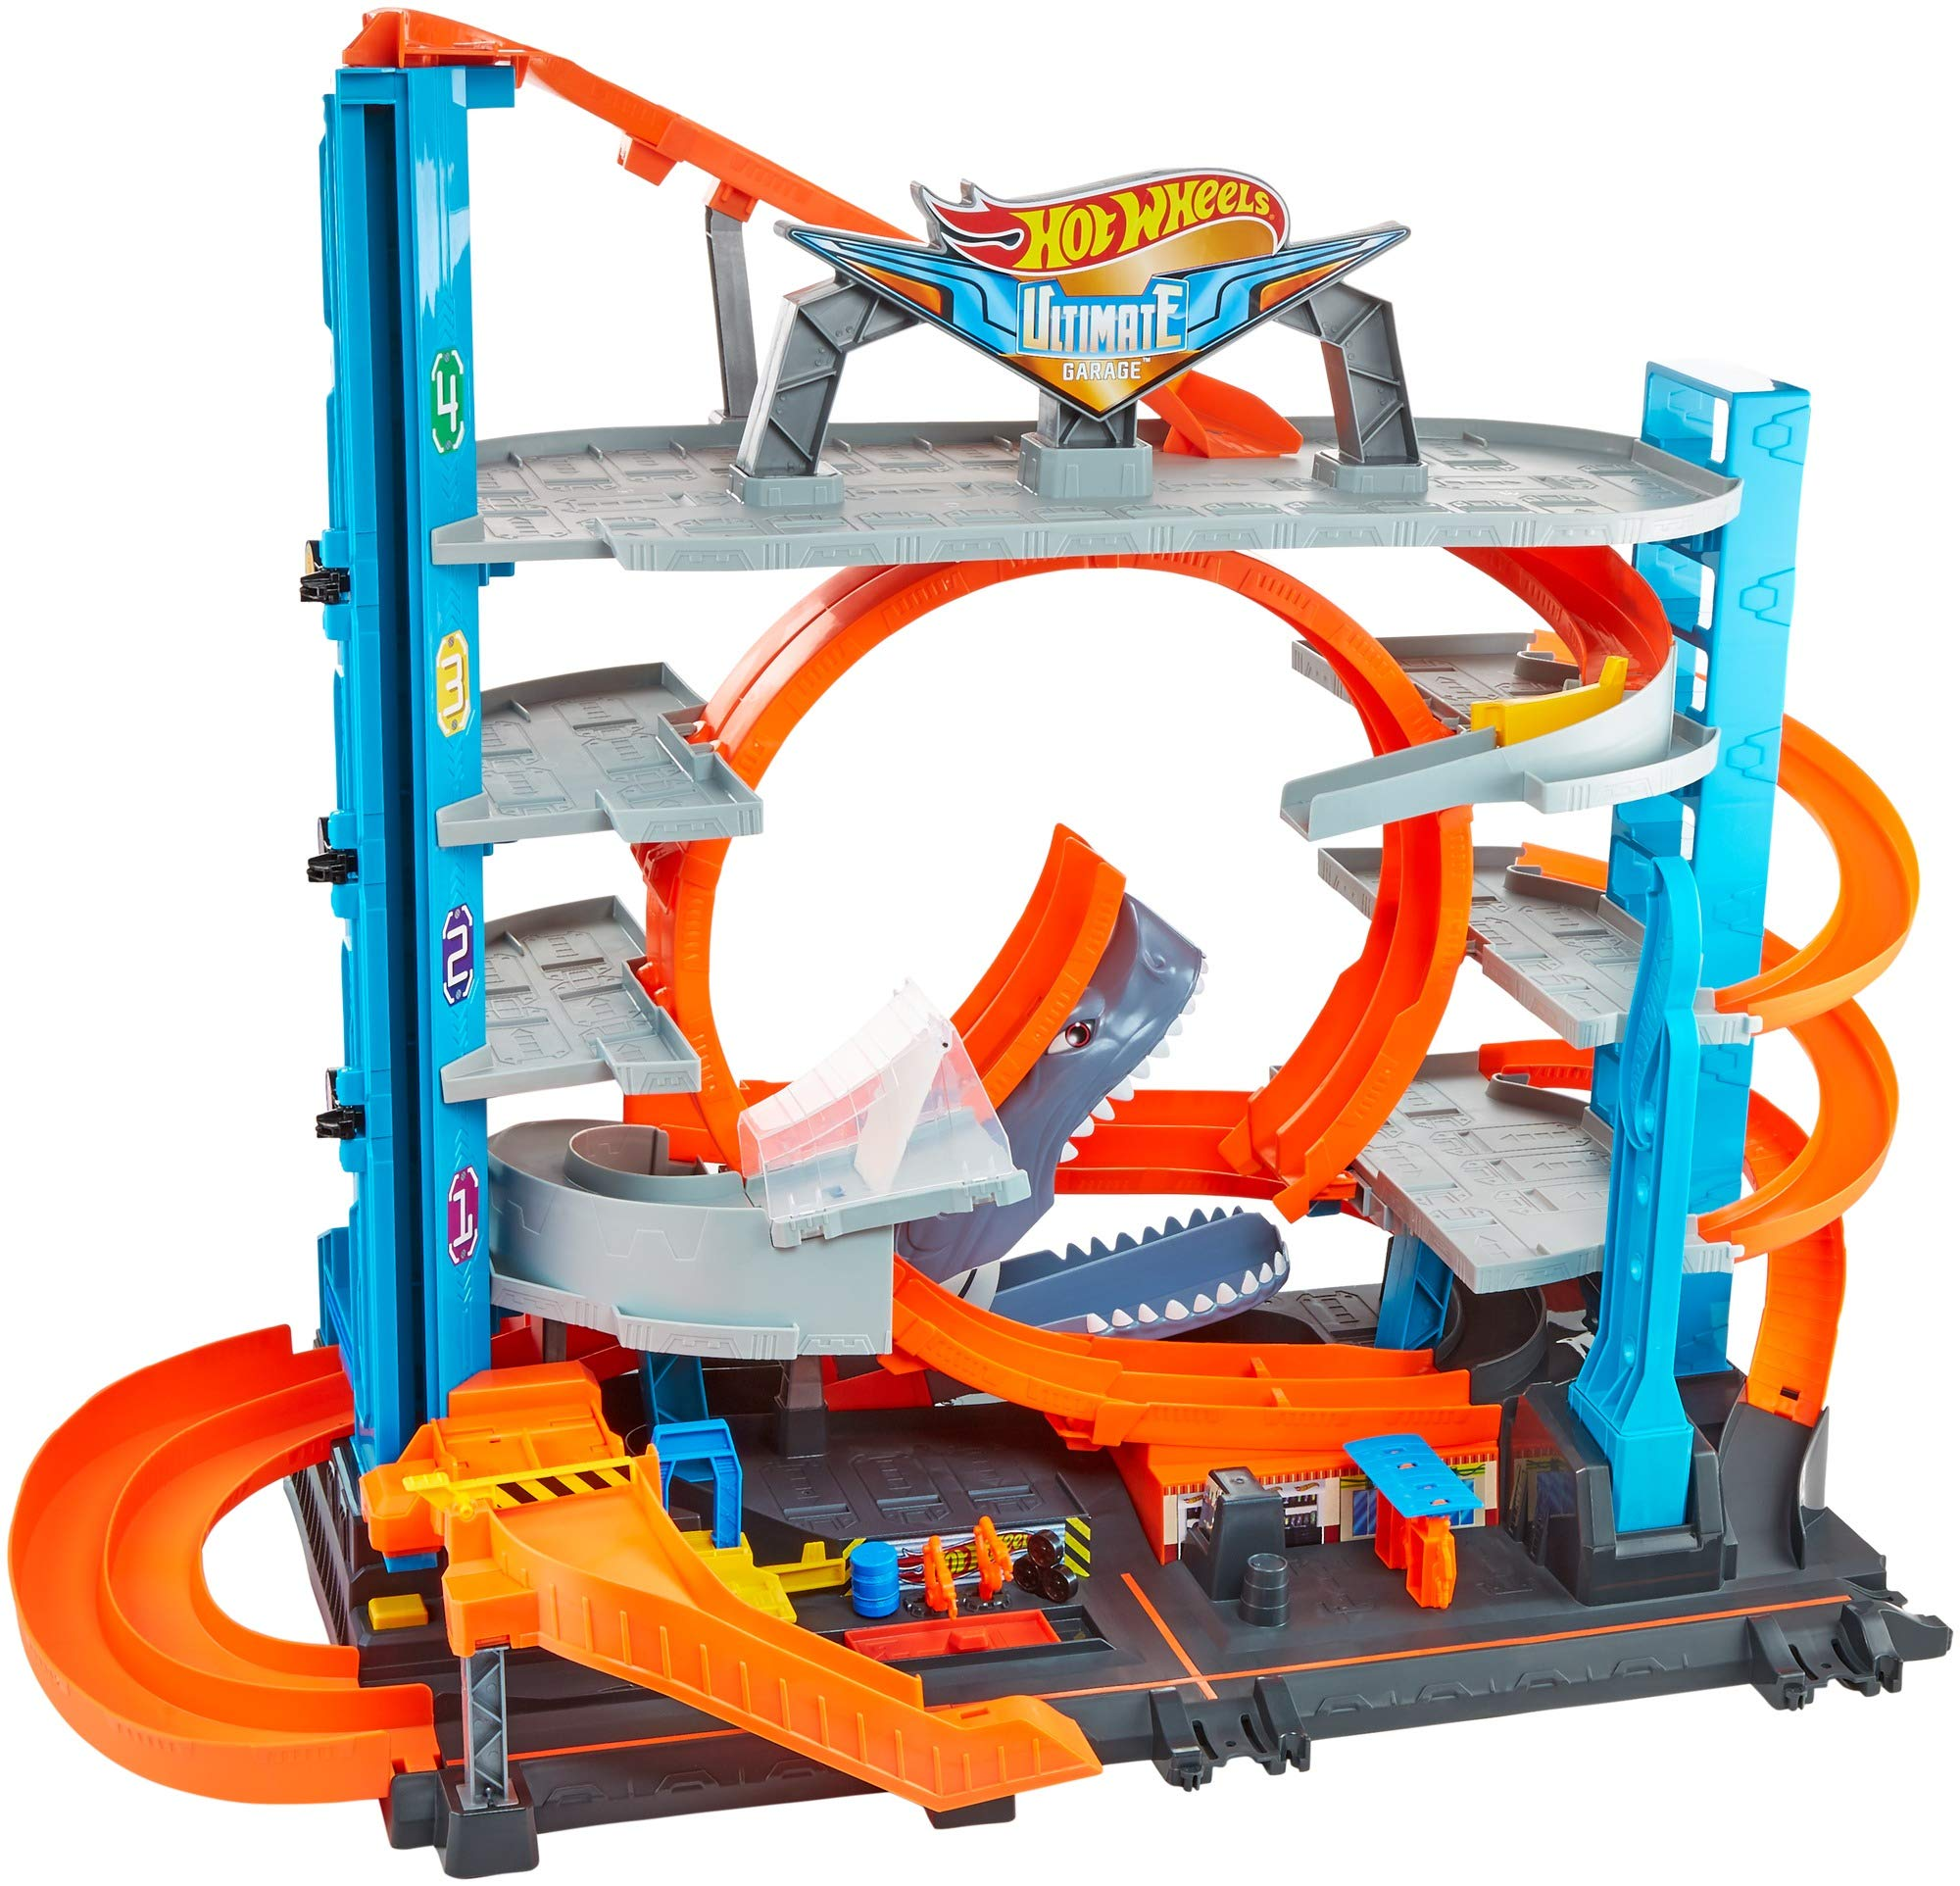 Hot Wheels FTB69 - City Ultimate Parkgarage und Parkhaus für Kinder, Garage mit Hai für +90 Autos, mit Looping Tracks…